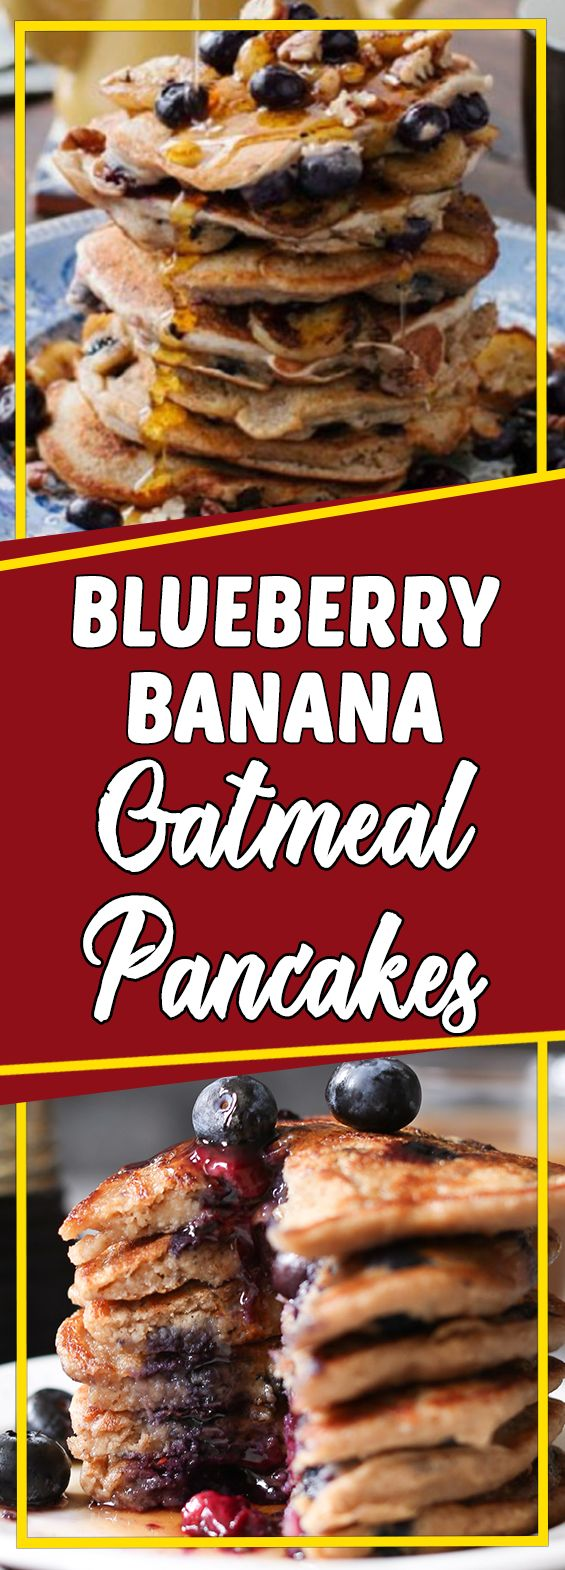 Blueberry Banana Oatmeal Pancakes #dessertrecipes #recipeideas #cookinglight #dessert #desserttable #appetizer